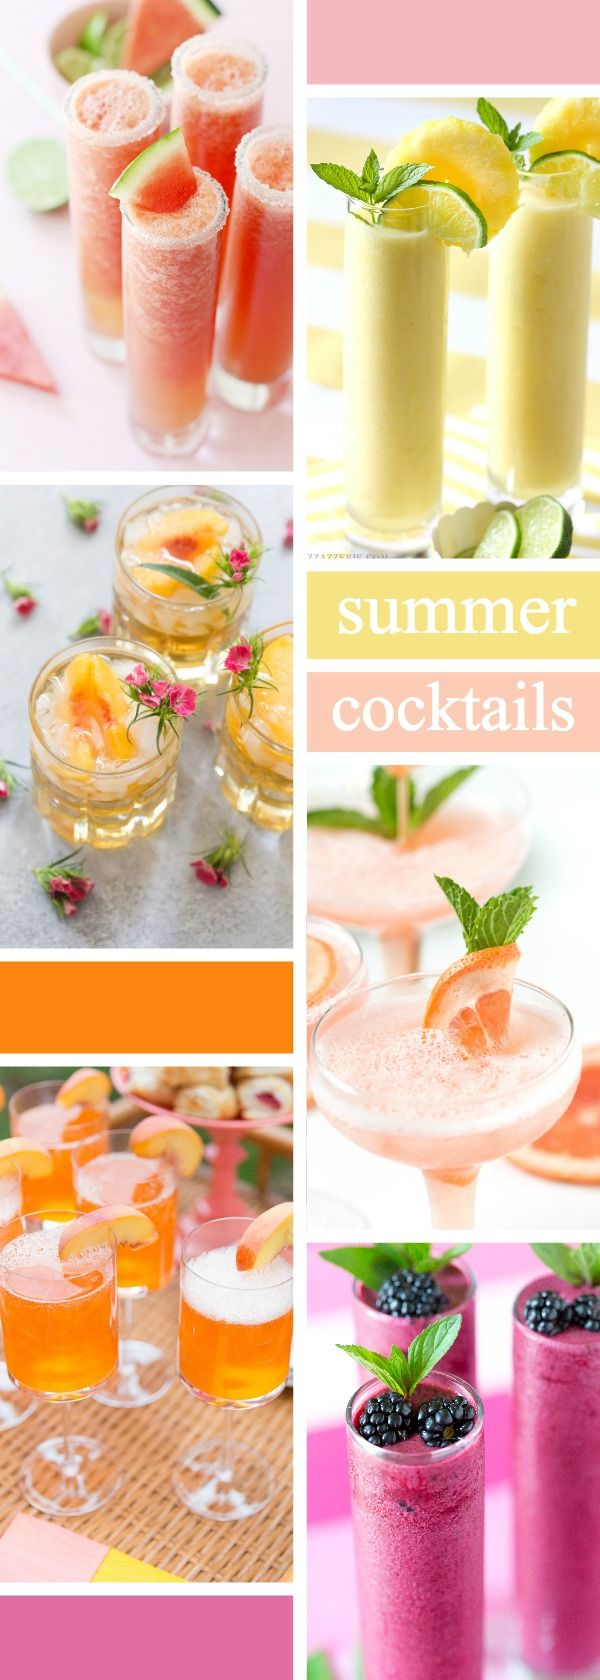 The best summer cocktails to beat the heat! Perfect drinks for parties!